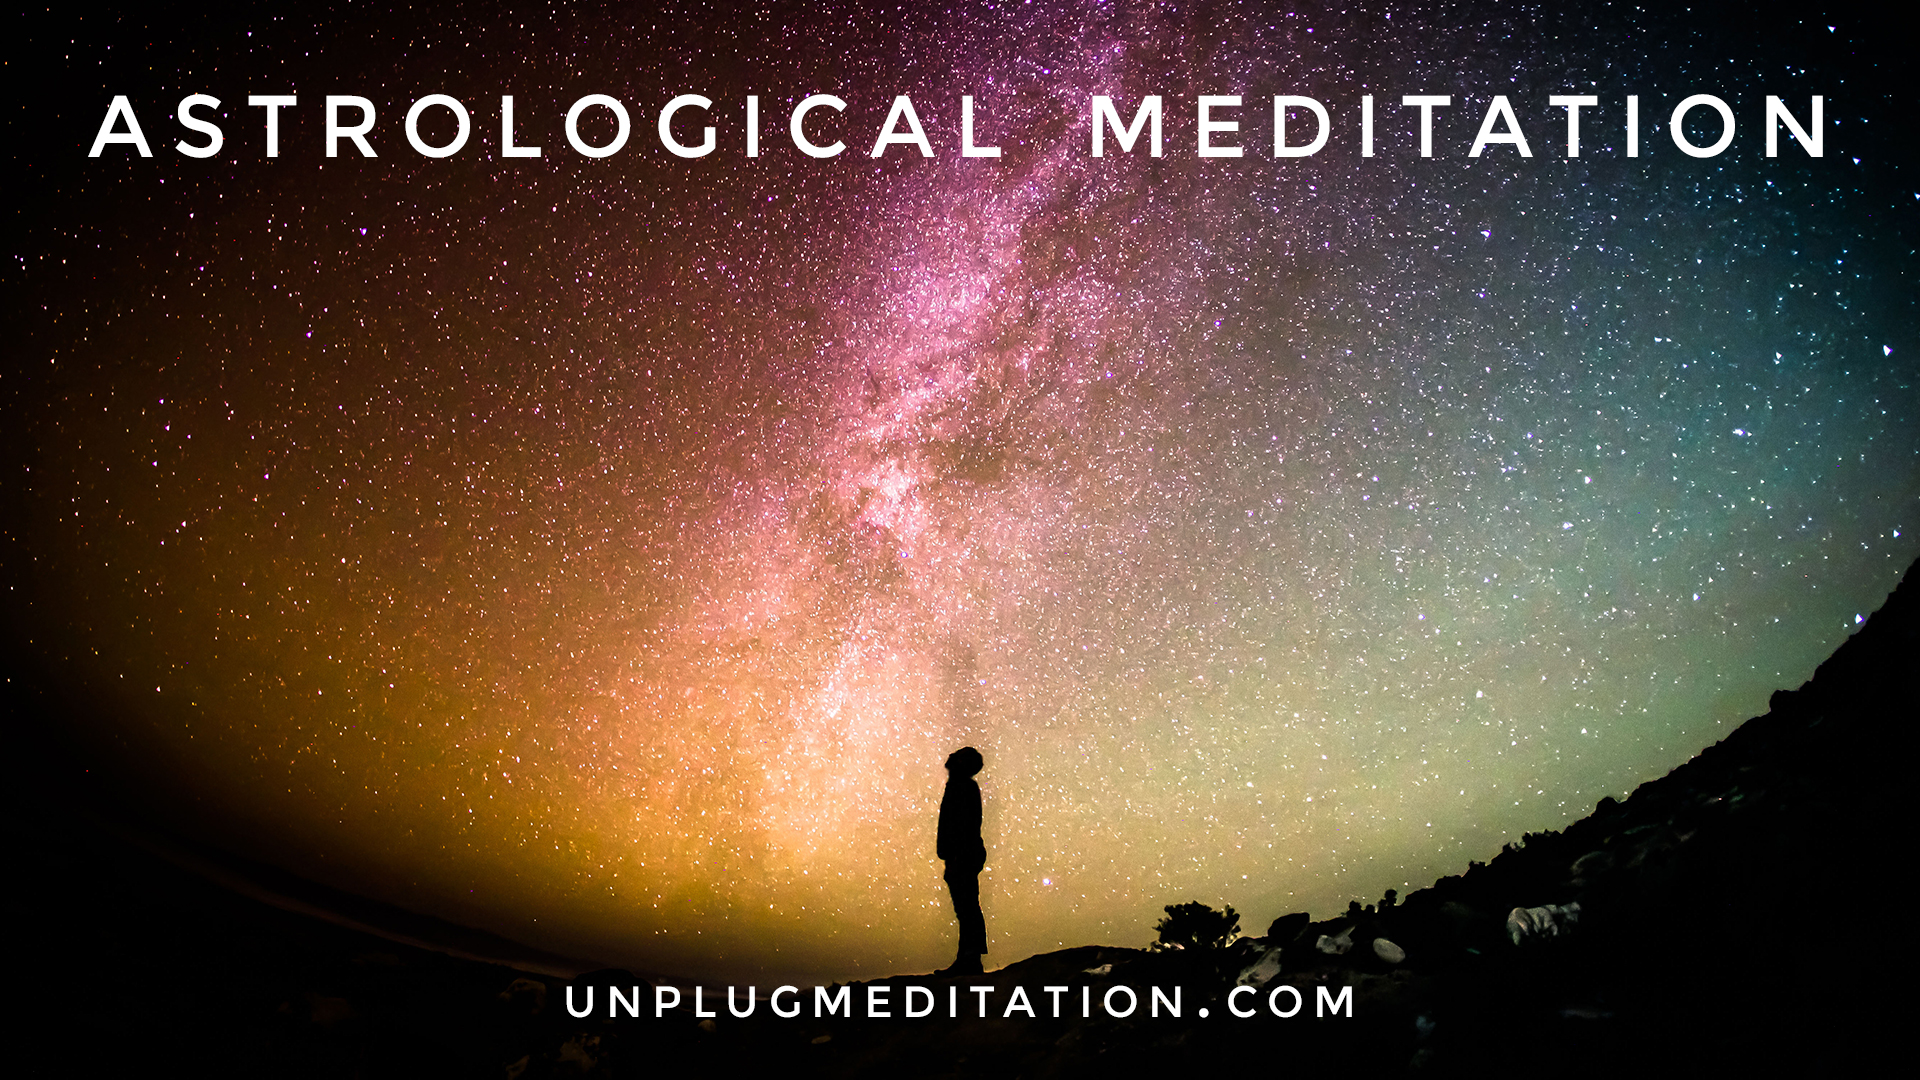 Unplug-Meditation-VHX-Covers-Artwork_Astrological-Meditation.jpg